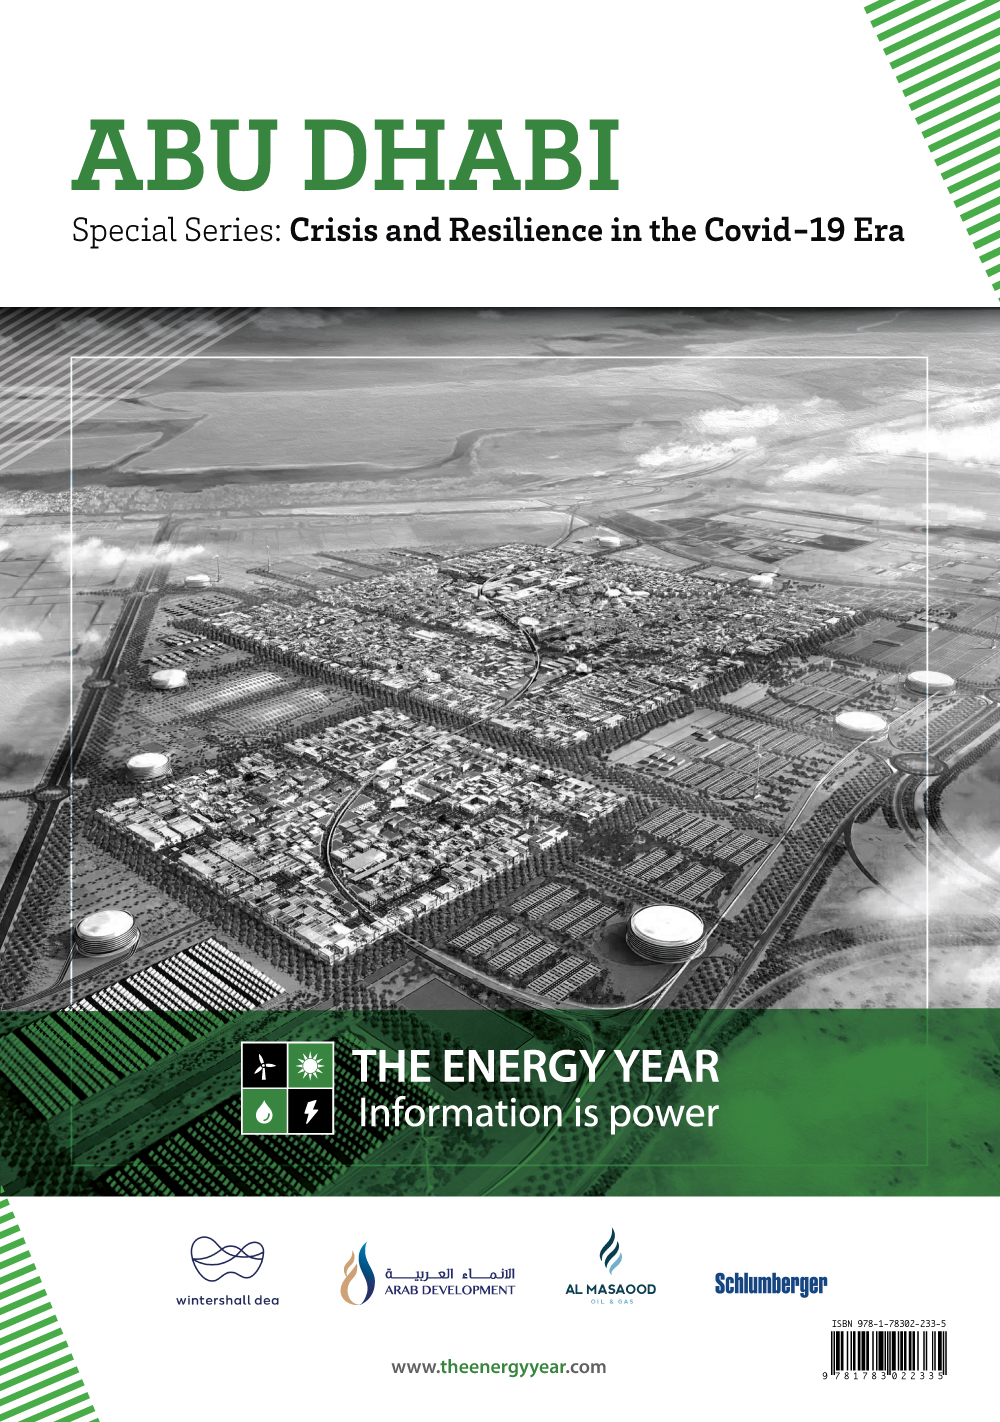 ABU DHABI Special Series: Crisis and Resilience in the Covid-19 Era